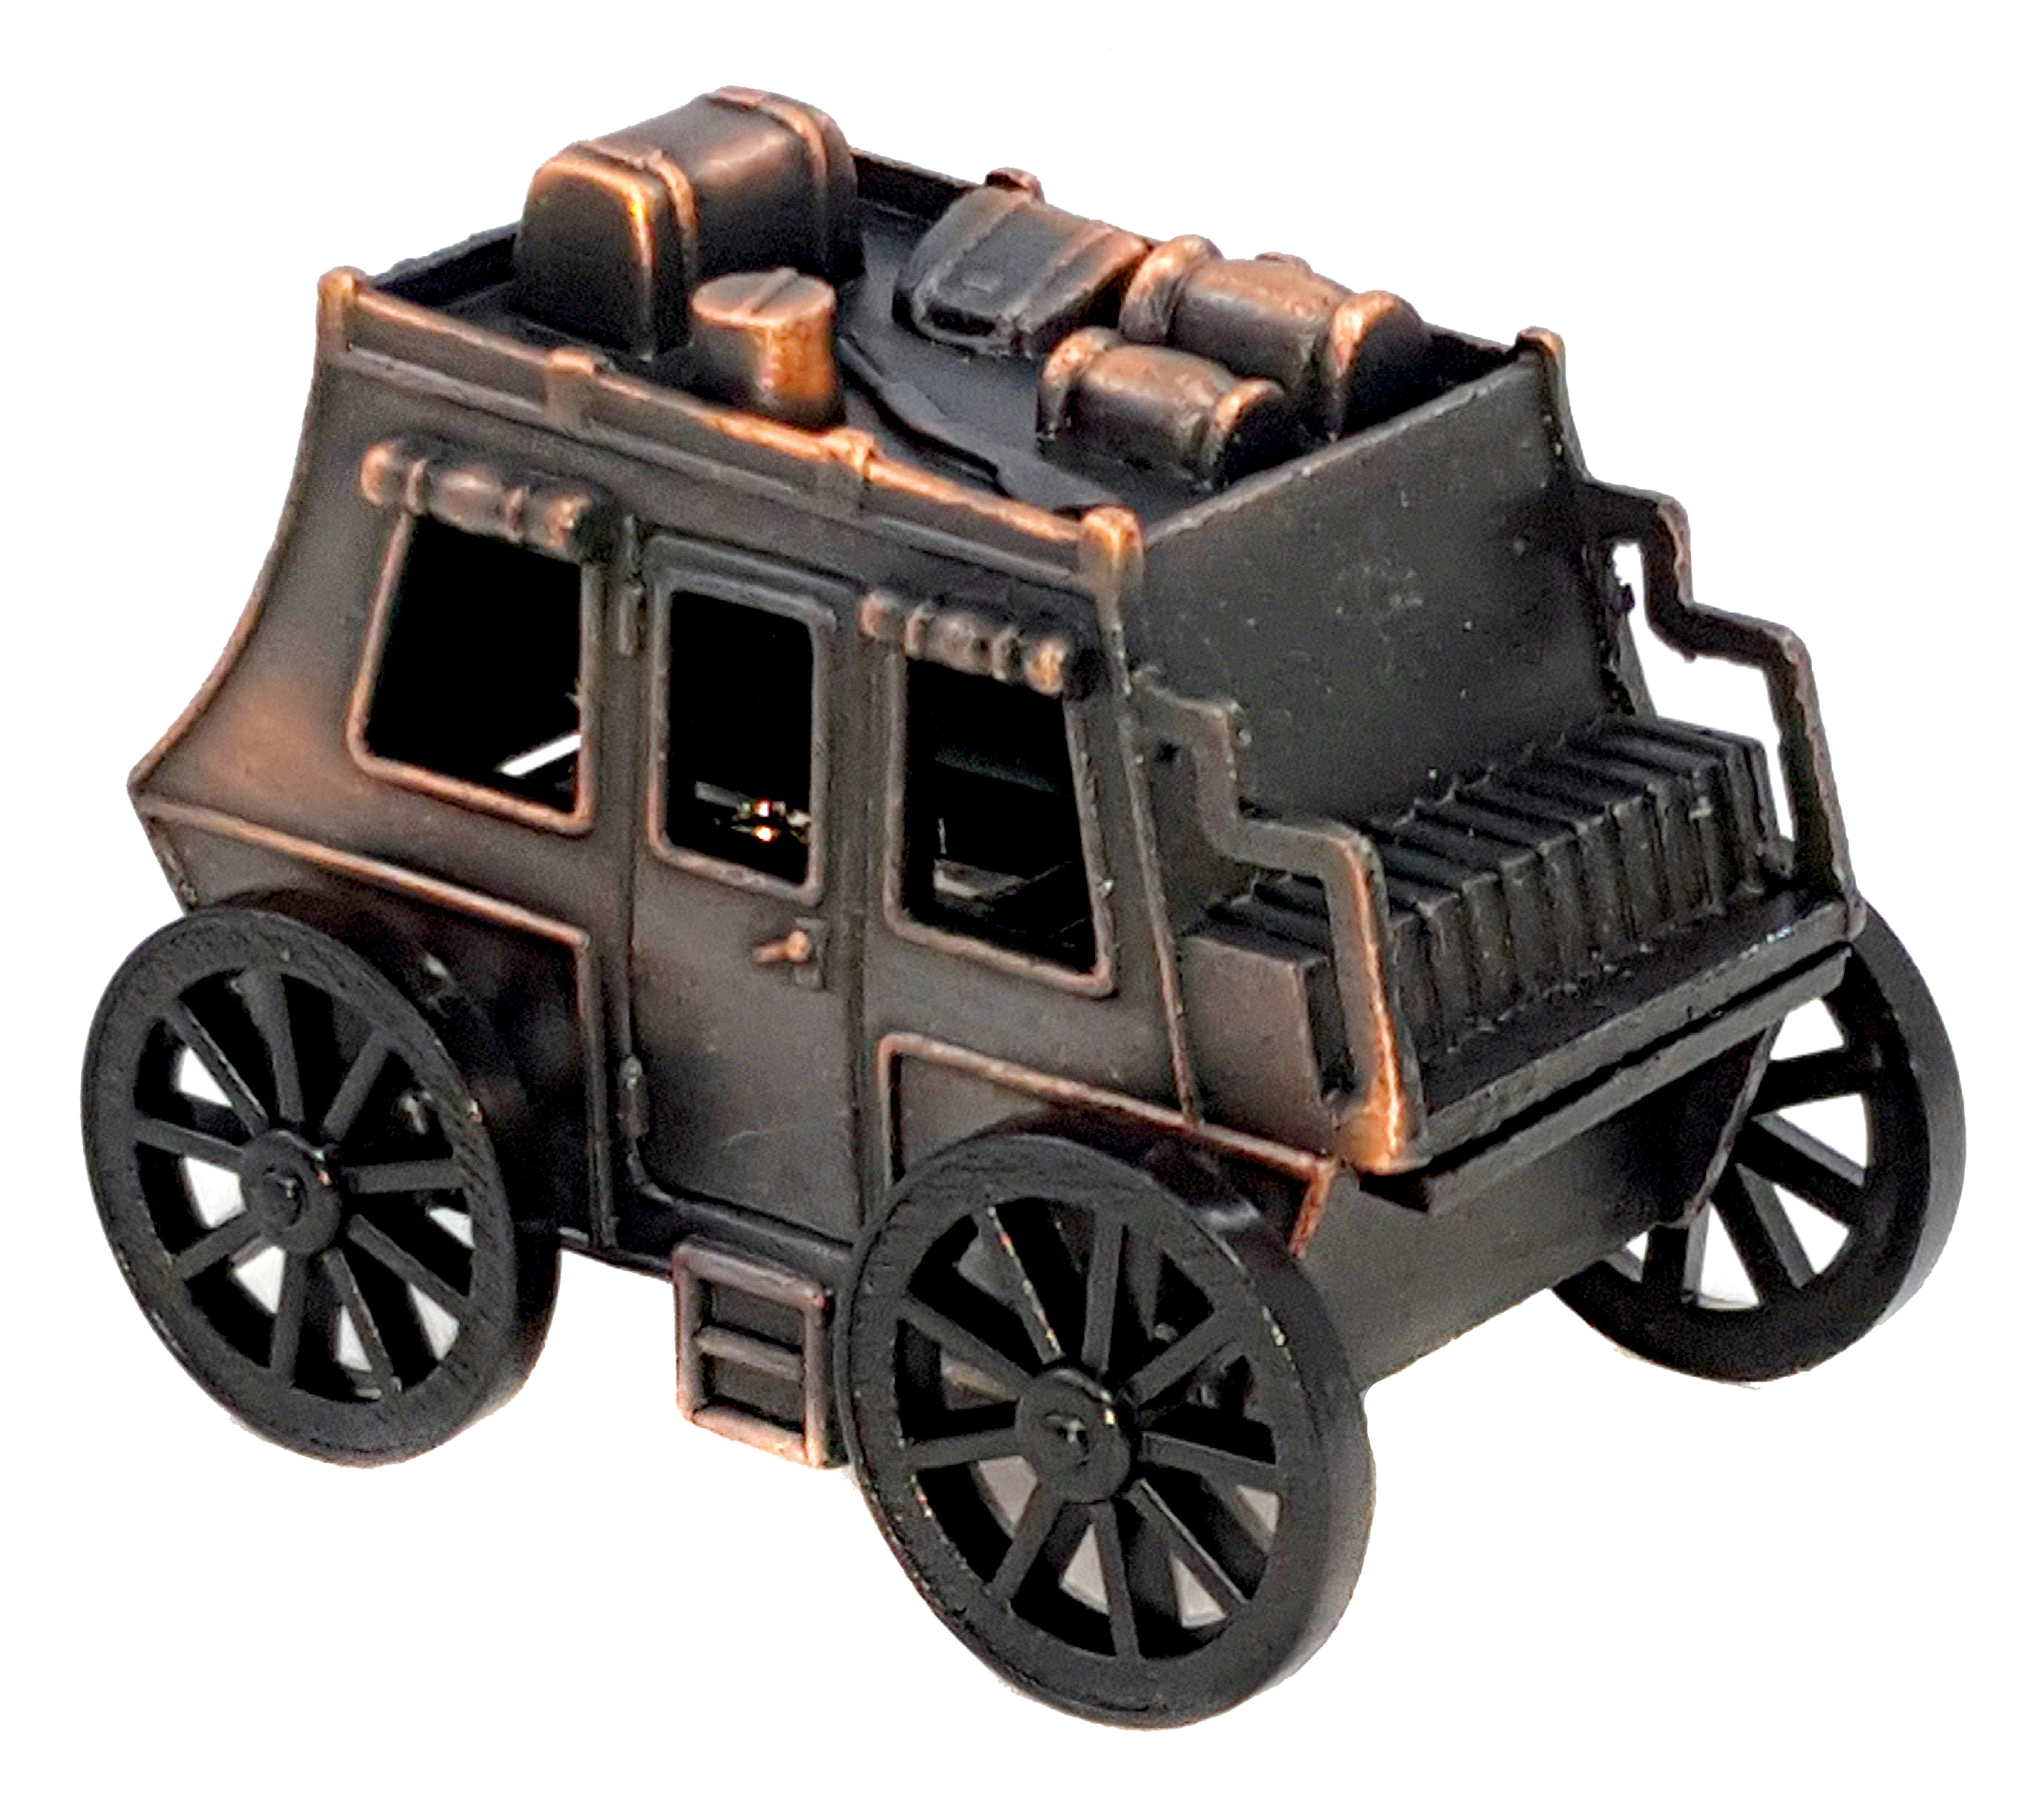 Missing image <6107Stagecoach.jpg> Group: 6107 - STAGECOACH Die Cast Metal Pencil Sharpener